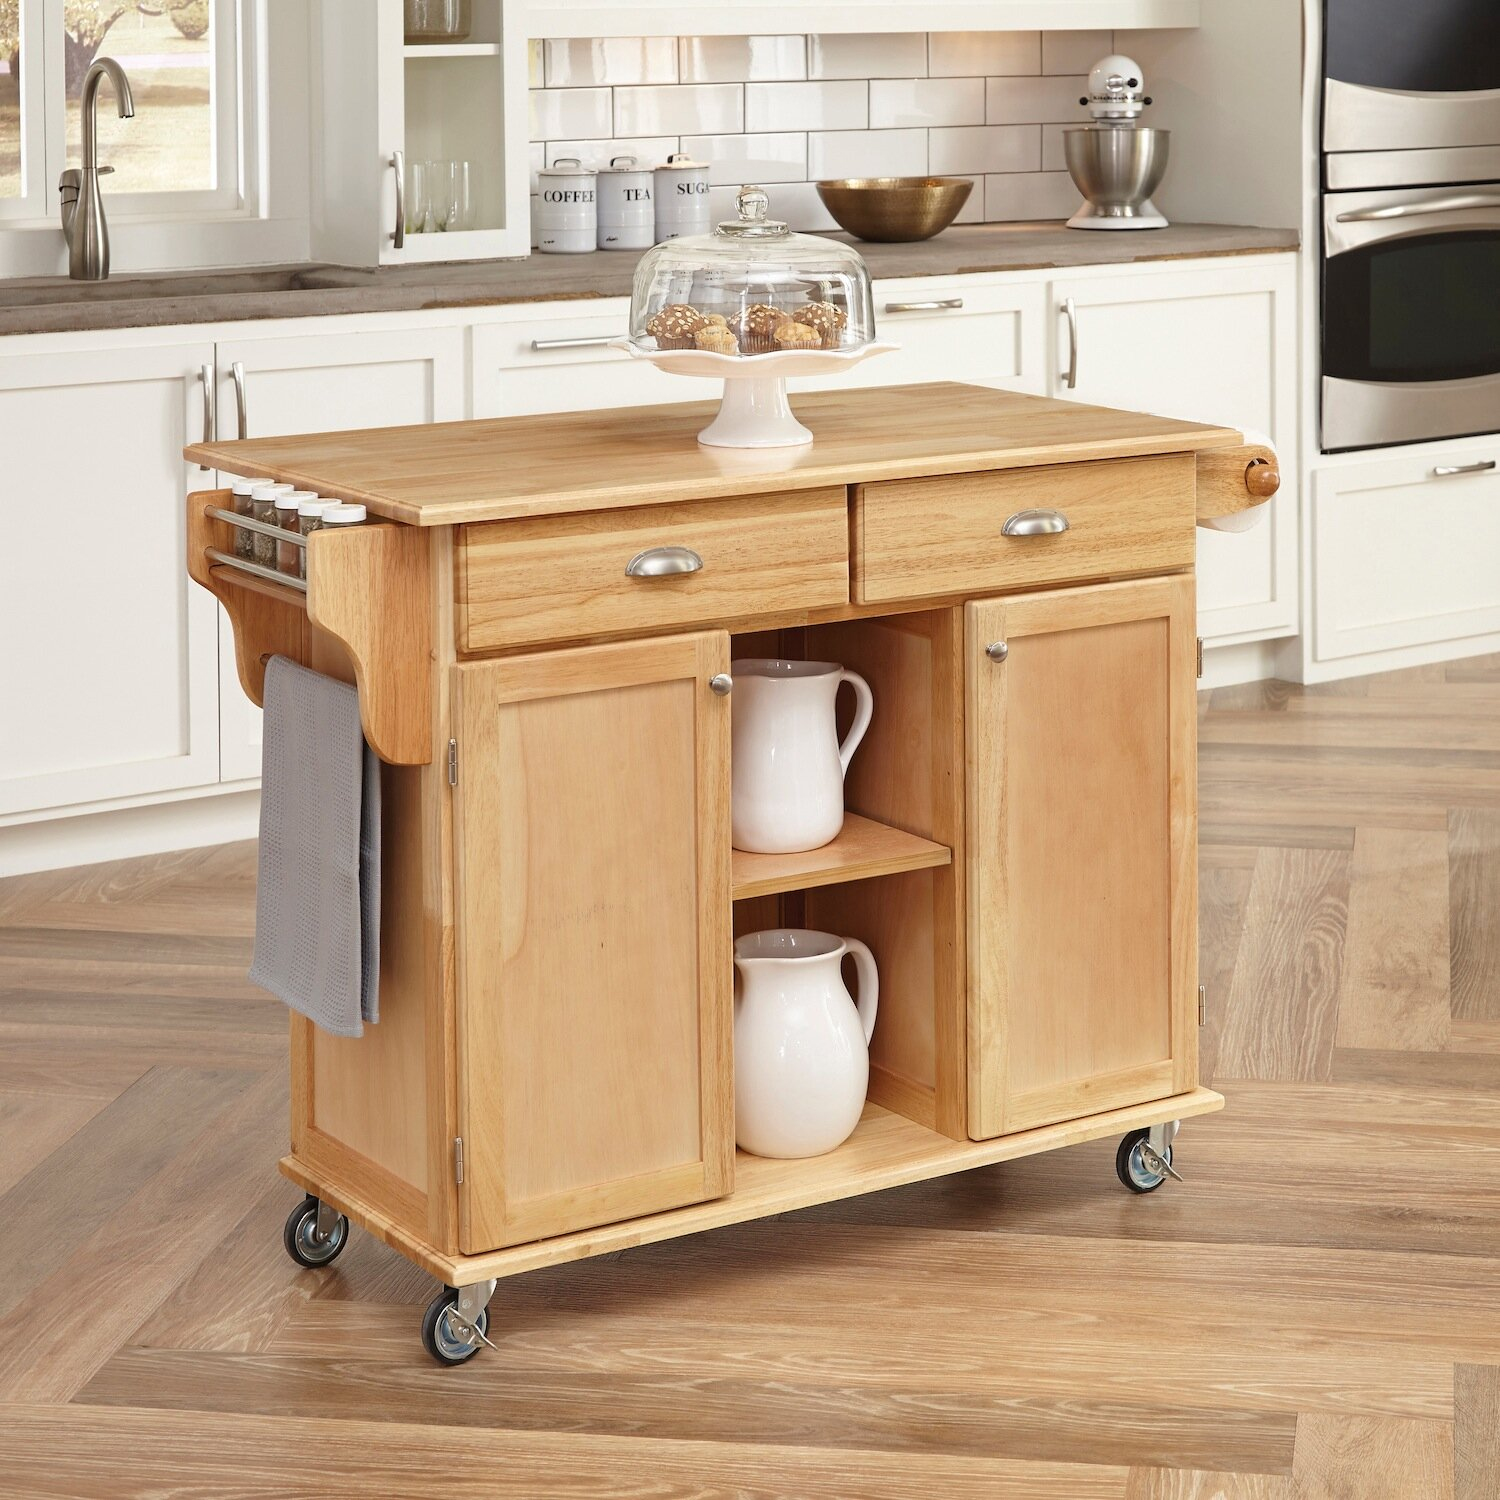 Where To Buy Kitchen Islands In Toronto